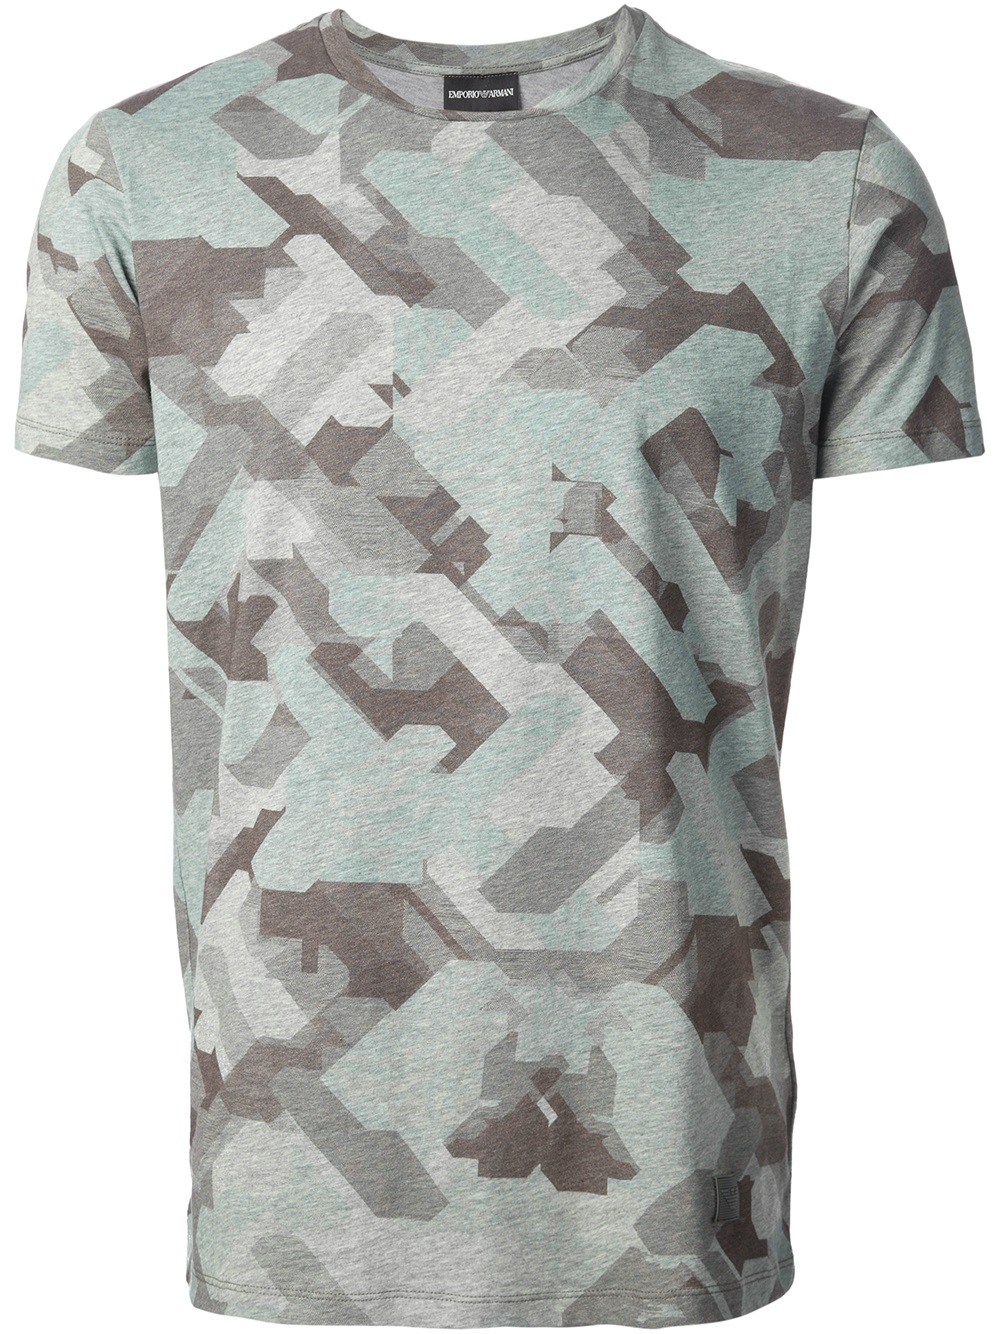 emporio armani camouflage print tshirt in green for men lyst. Black Bedroom Furniture Sets. Home Design Ideas